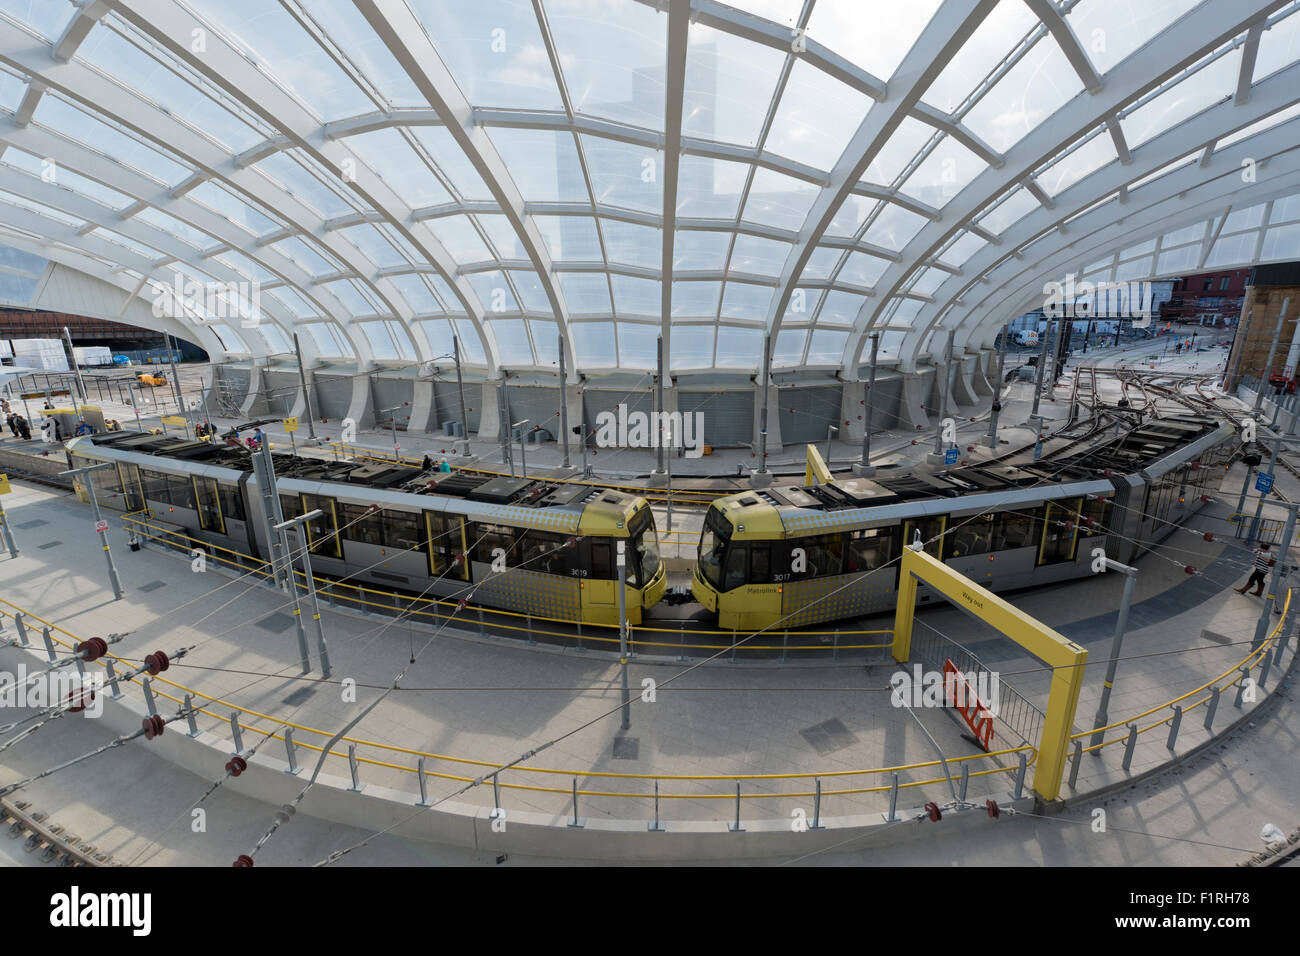 The inside area of the refurbished Victoria Station in Manchester, featuring the Metrolink LRT stop - Stock Image